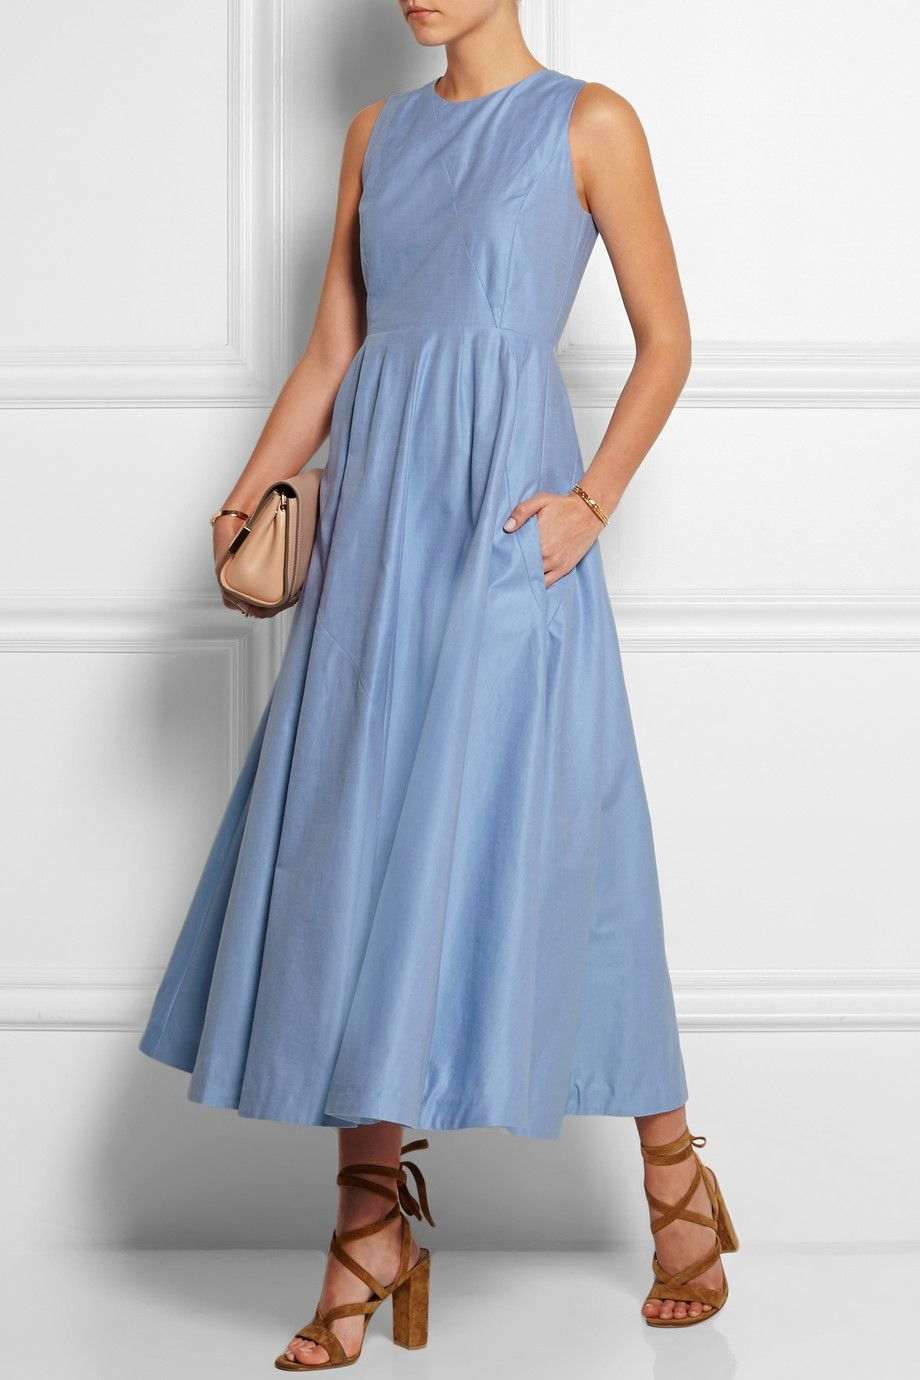 Merchant Archive | Cotton-twill dress | NET-A-PORTER.COM